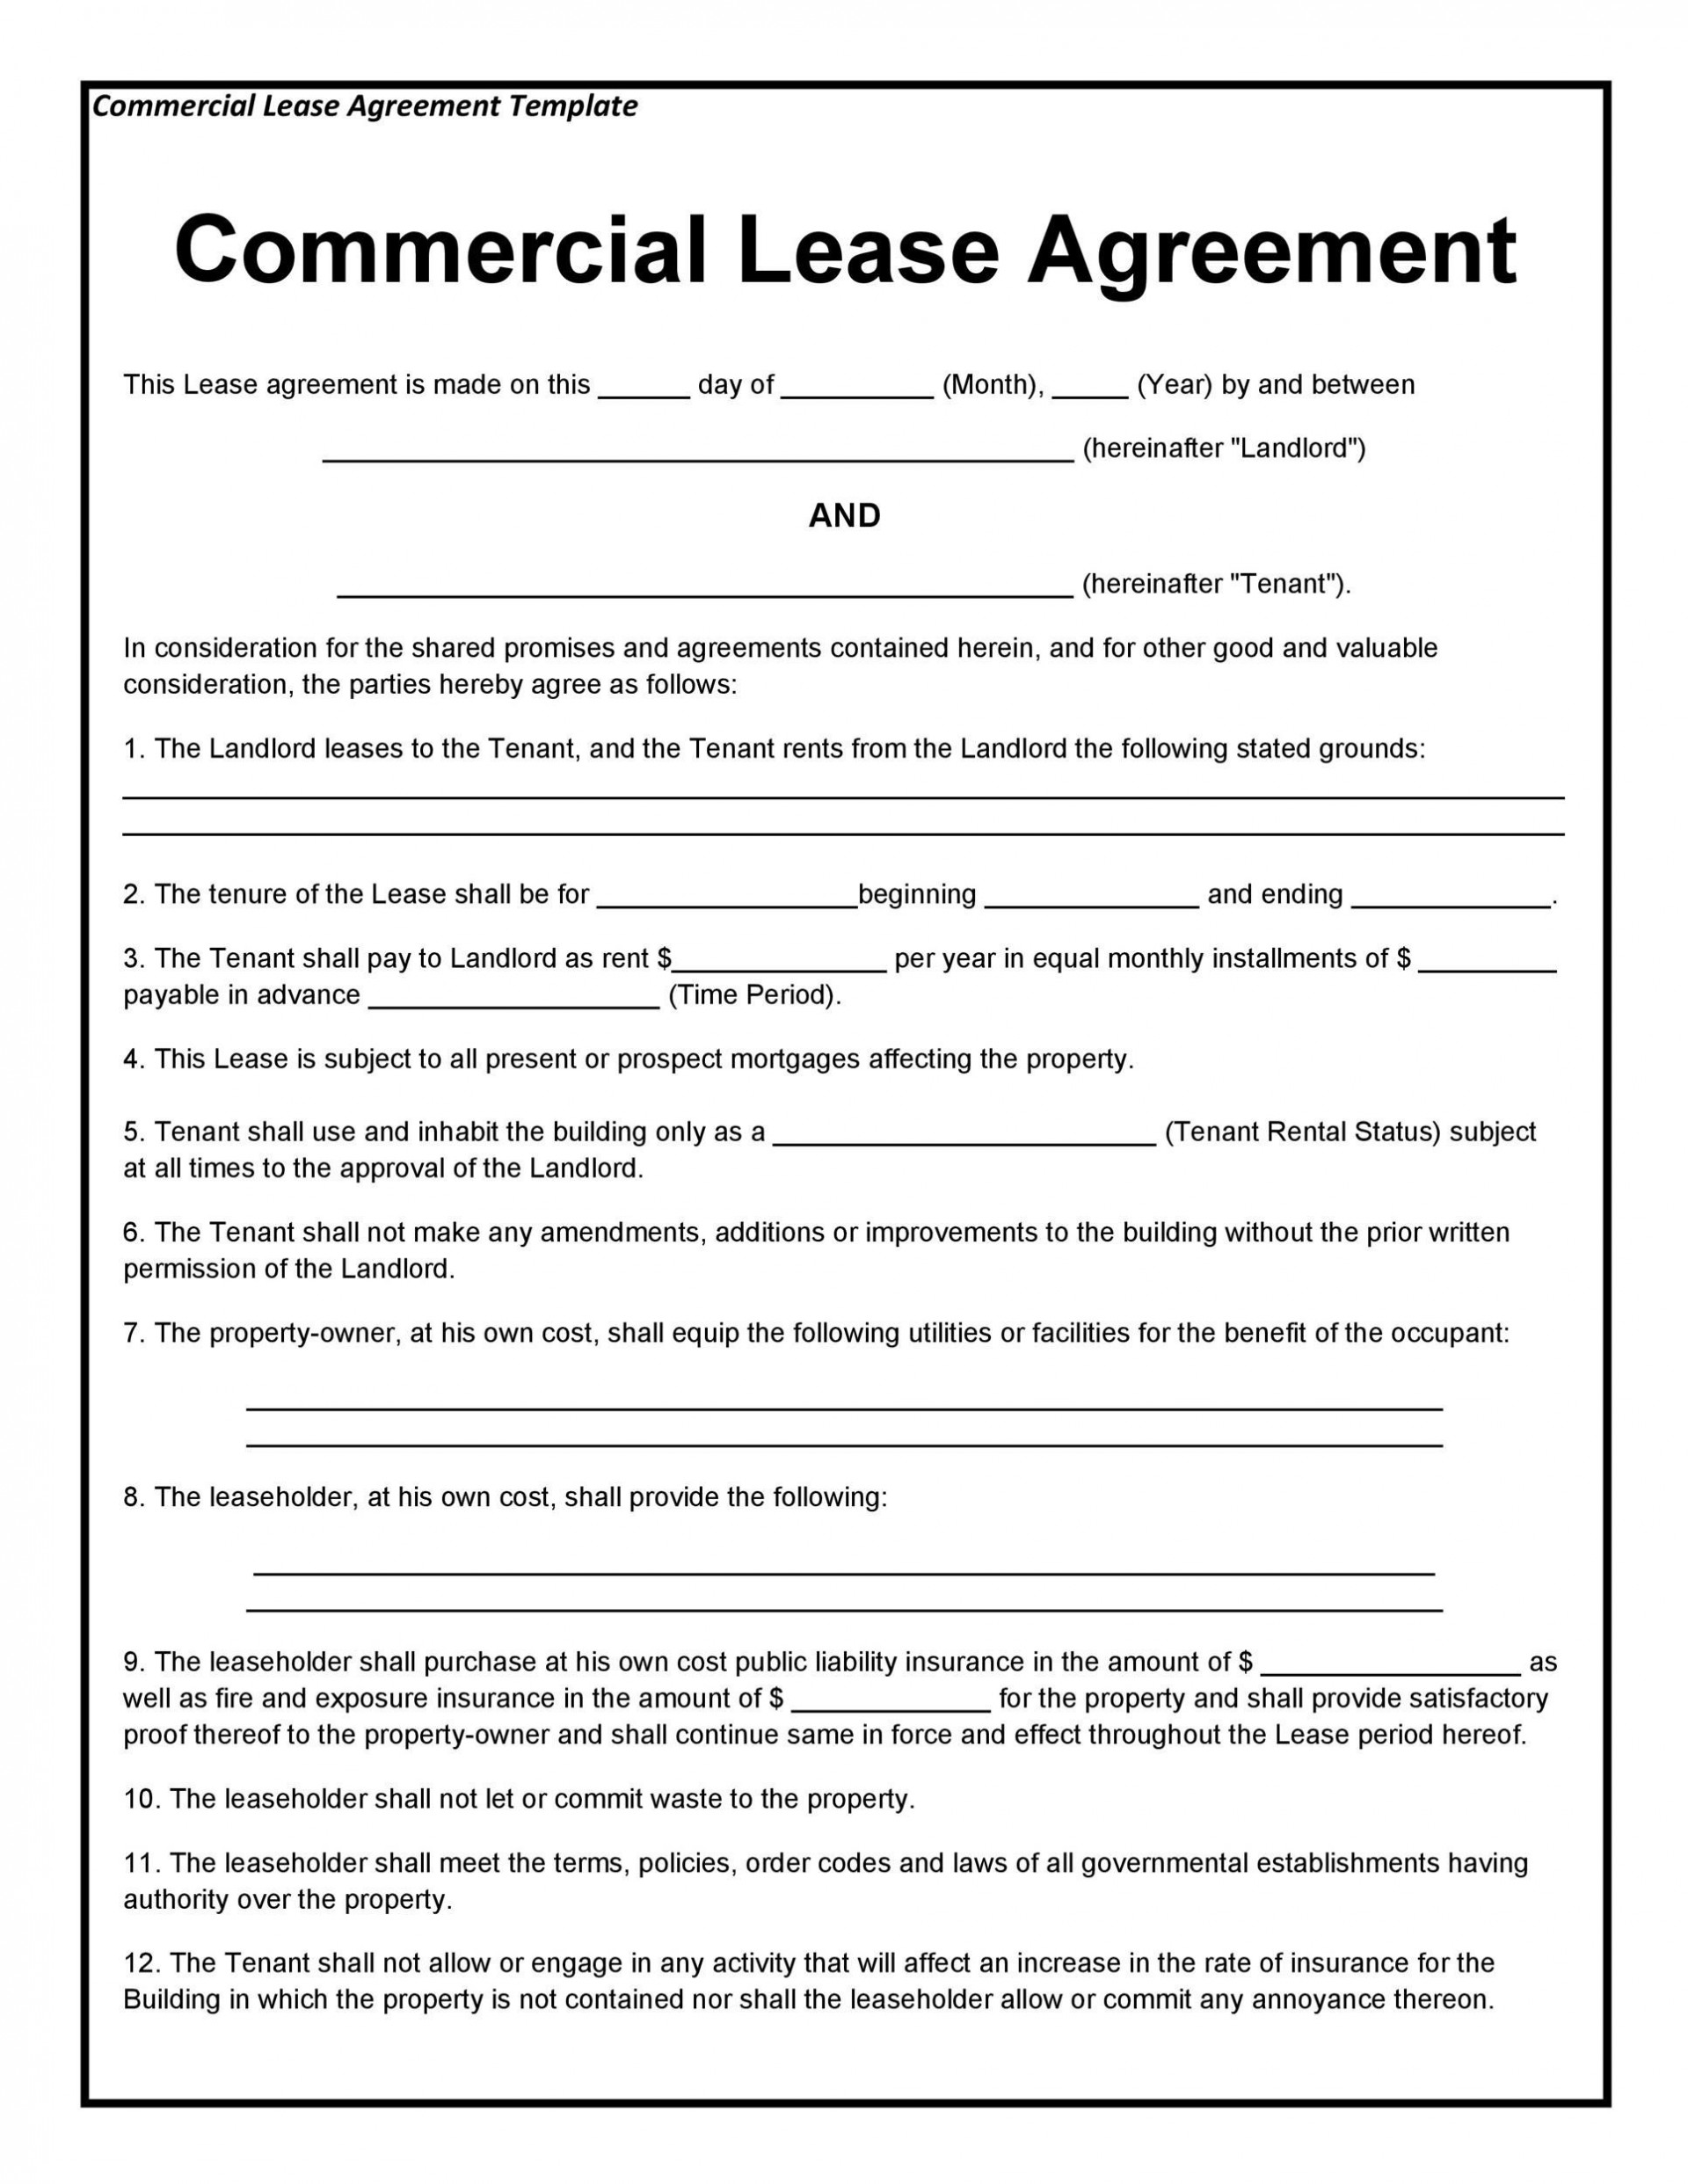 003 Imposing Property Management Contract South Africa Image  Commercial Agreement1920